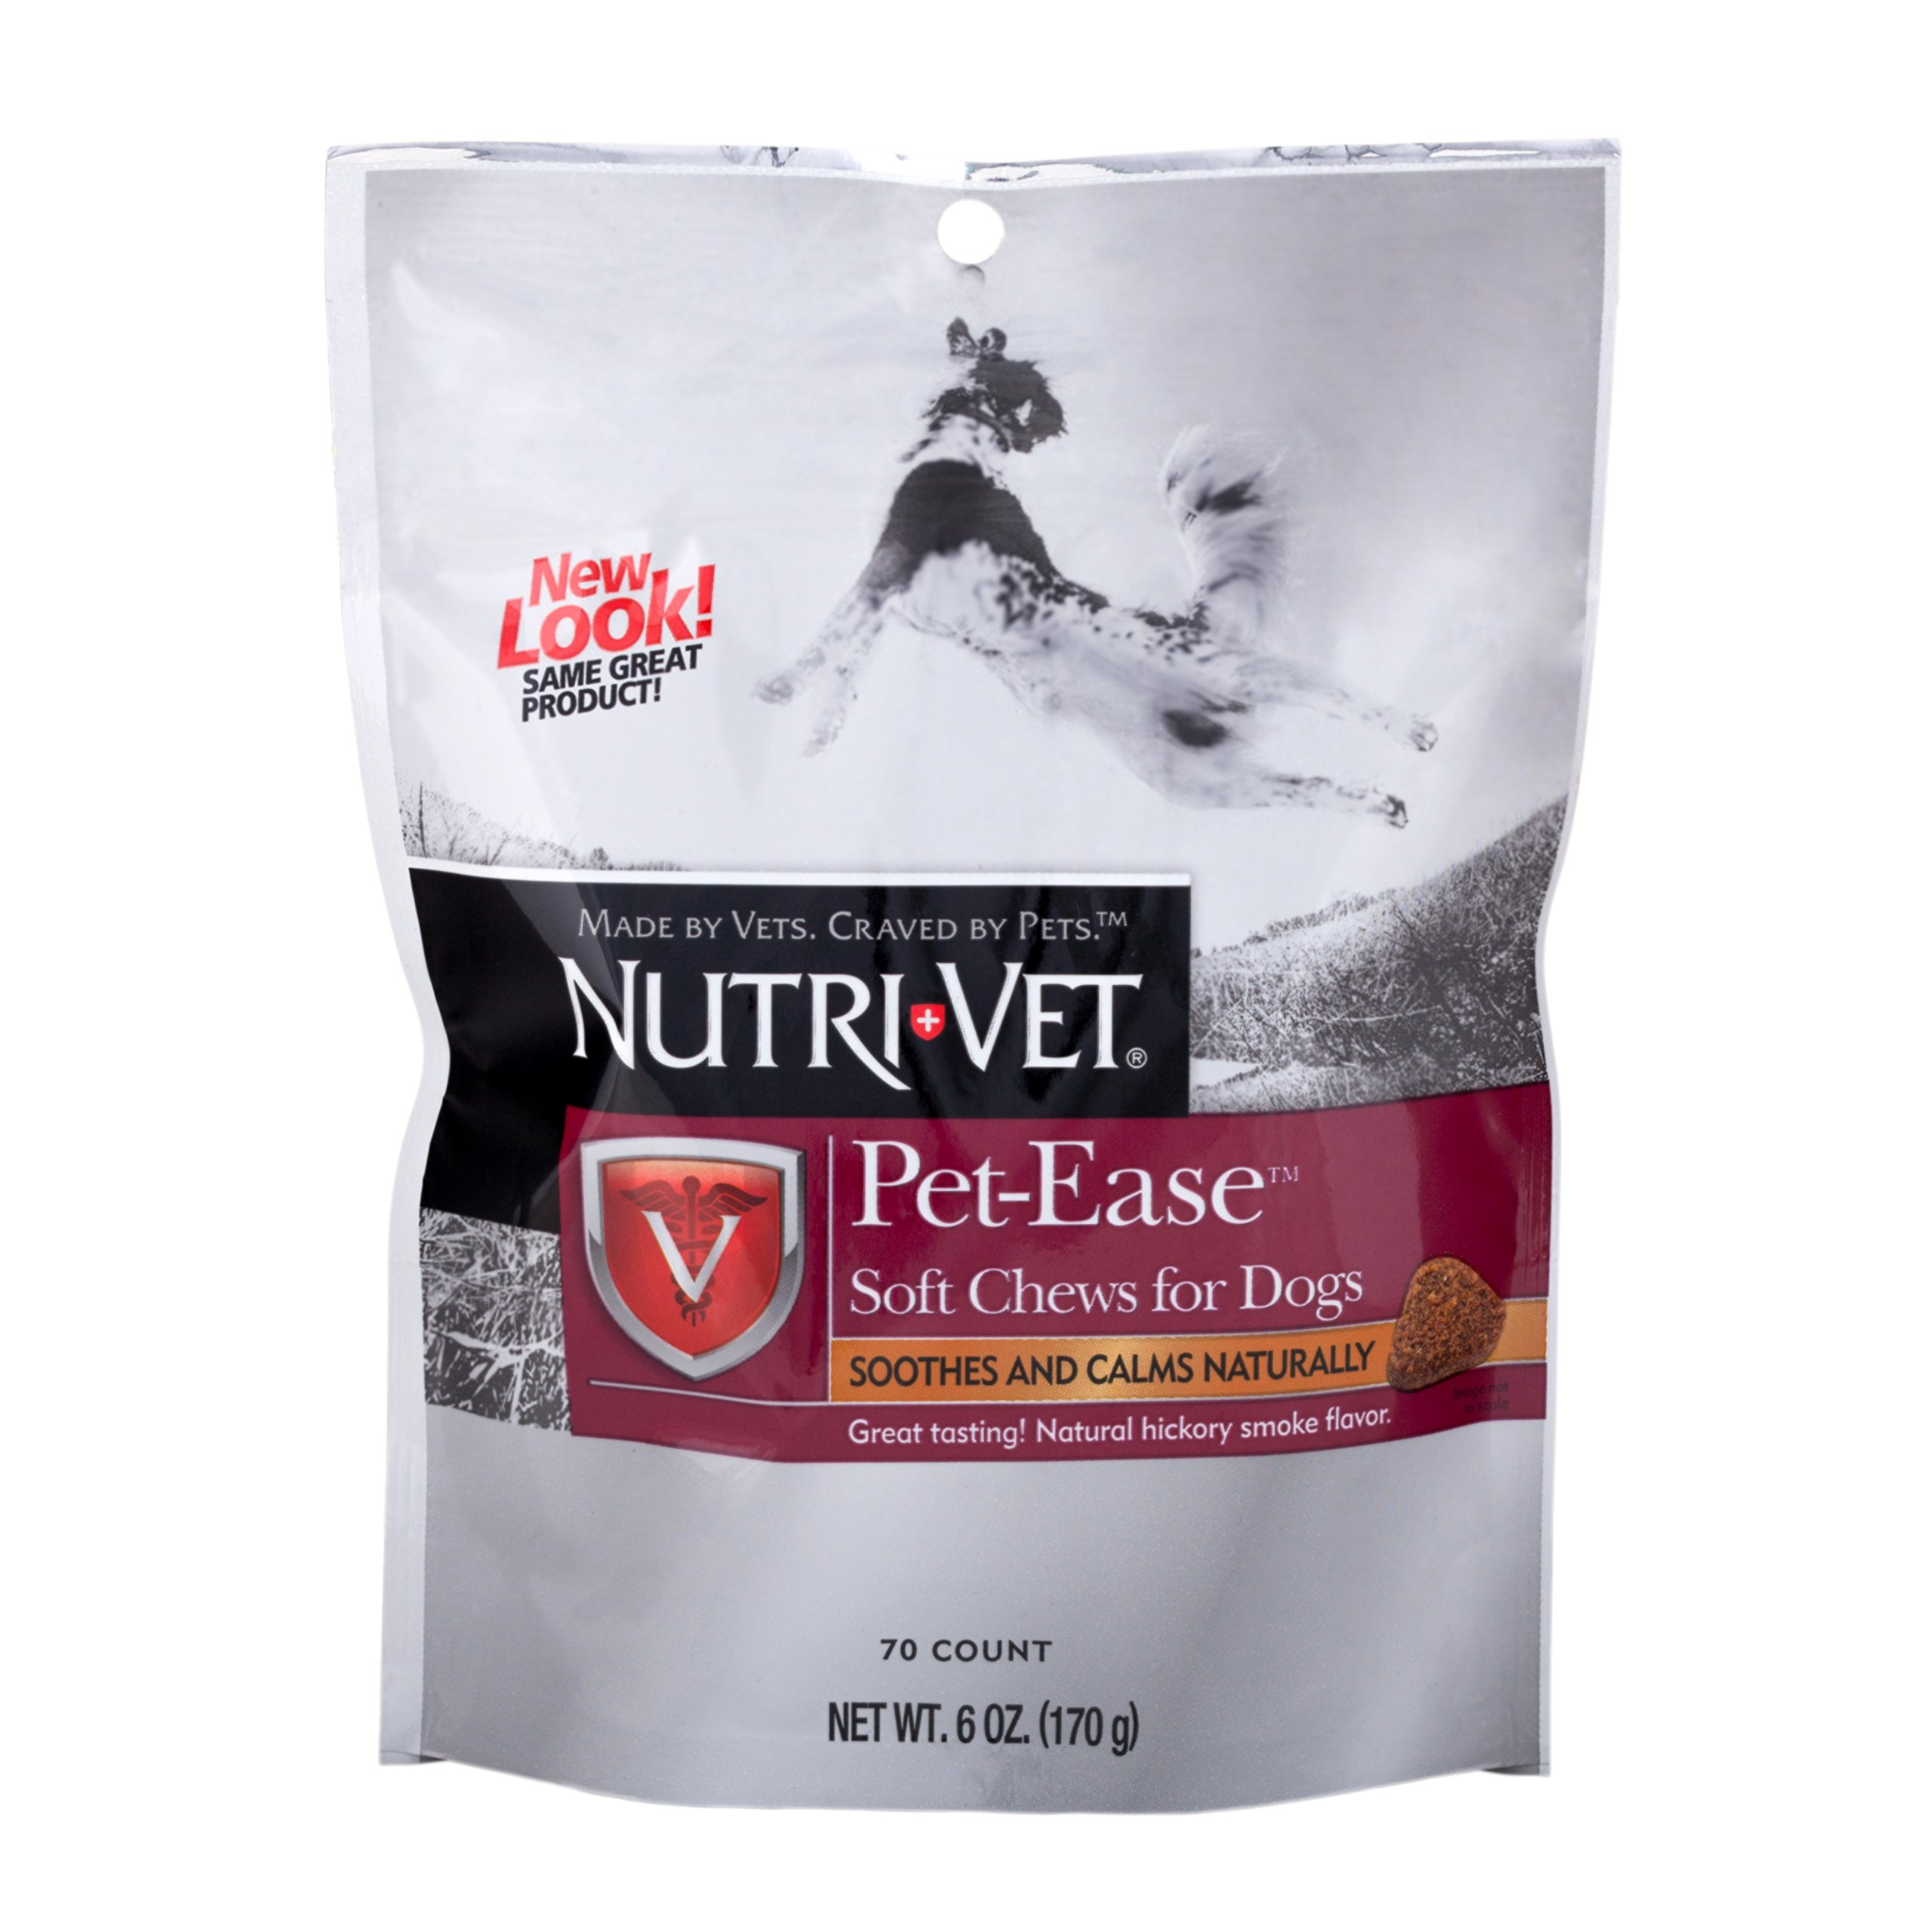 Nutri-Vet Pet-Ease for Dogs Soft Chews